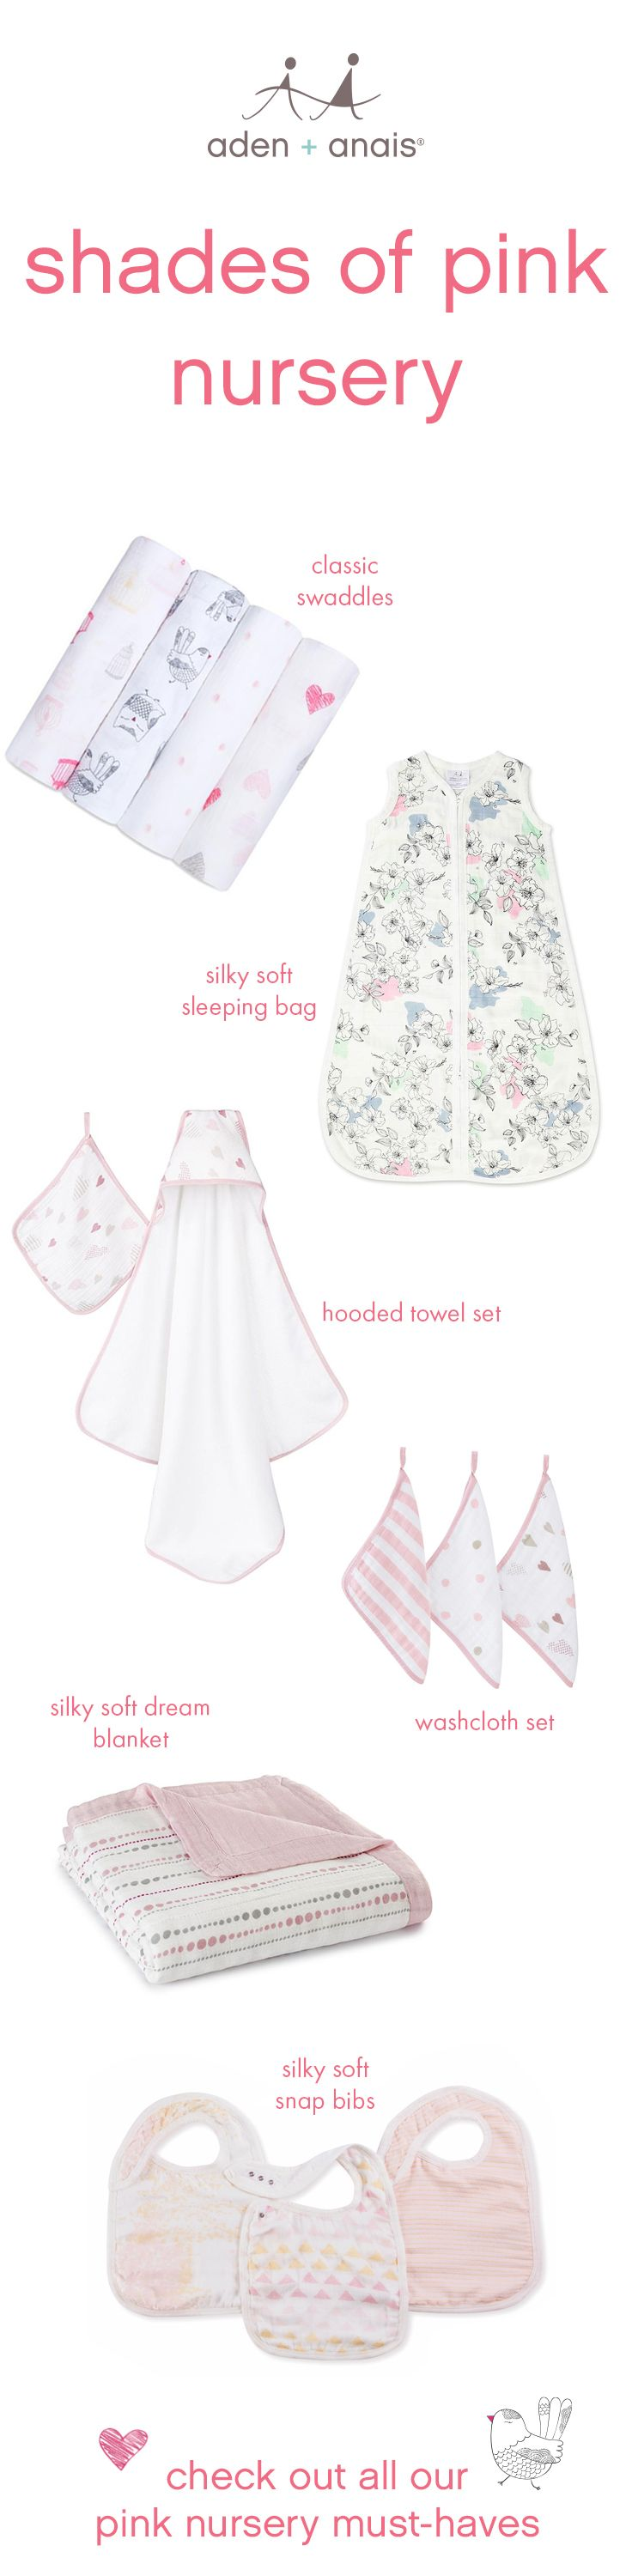 putting together your baby's nursery means decorating the room where they'll grow, dream and hopefully sleep through the night. get inspired with pretty nursery essentials in every shade of pink.